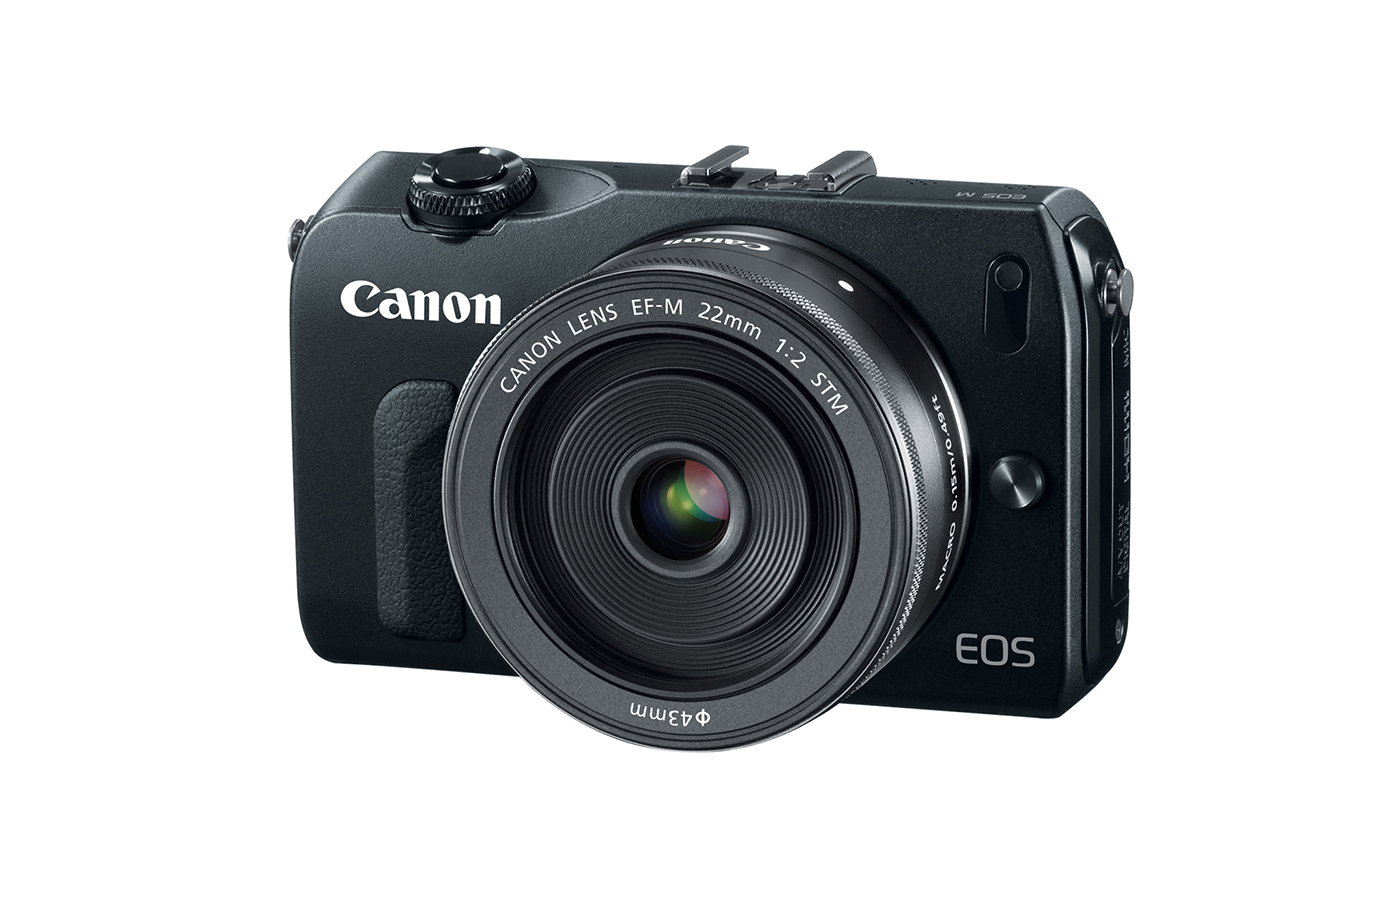 Getting Started with CSC: 6 Mirrorless Cameras Under $600, Canon EOS M CSC Cameraplex